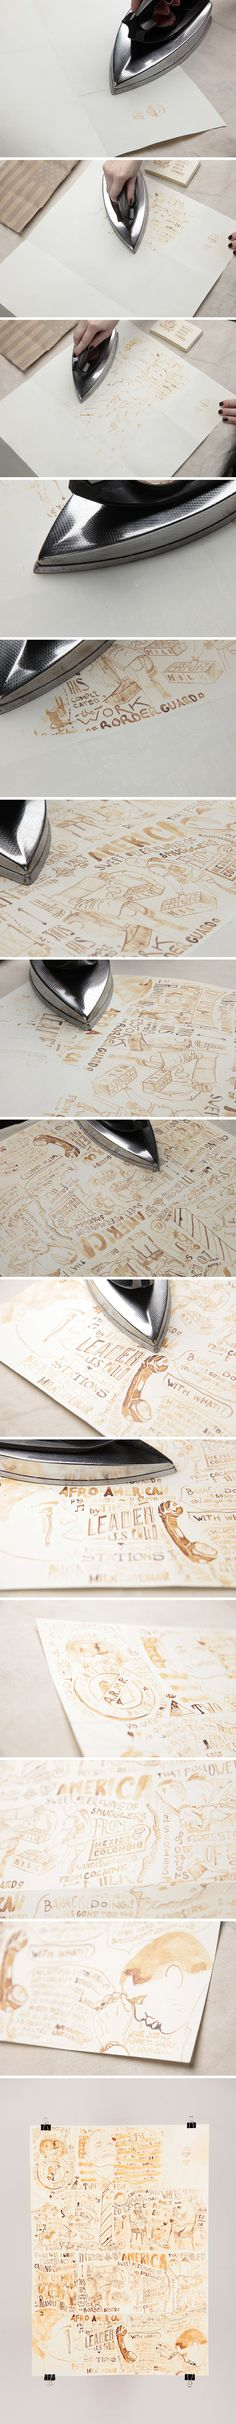 Amazing: Draw with milk on paper, let dry for 30 minutes, and then iron to reveal!!!